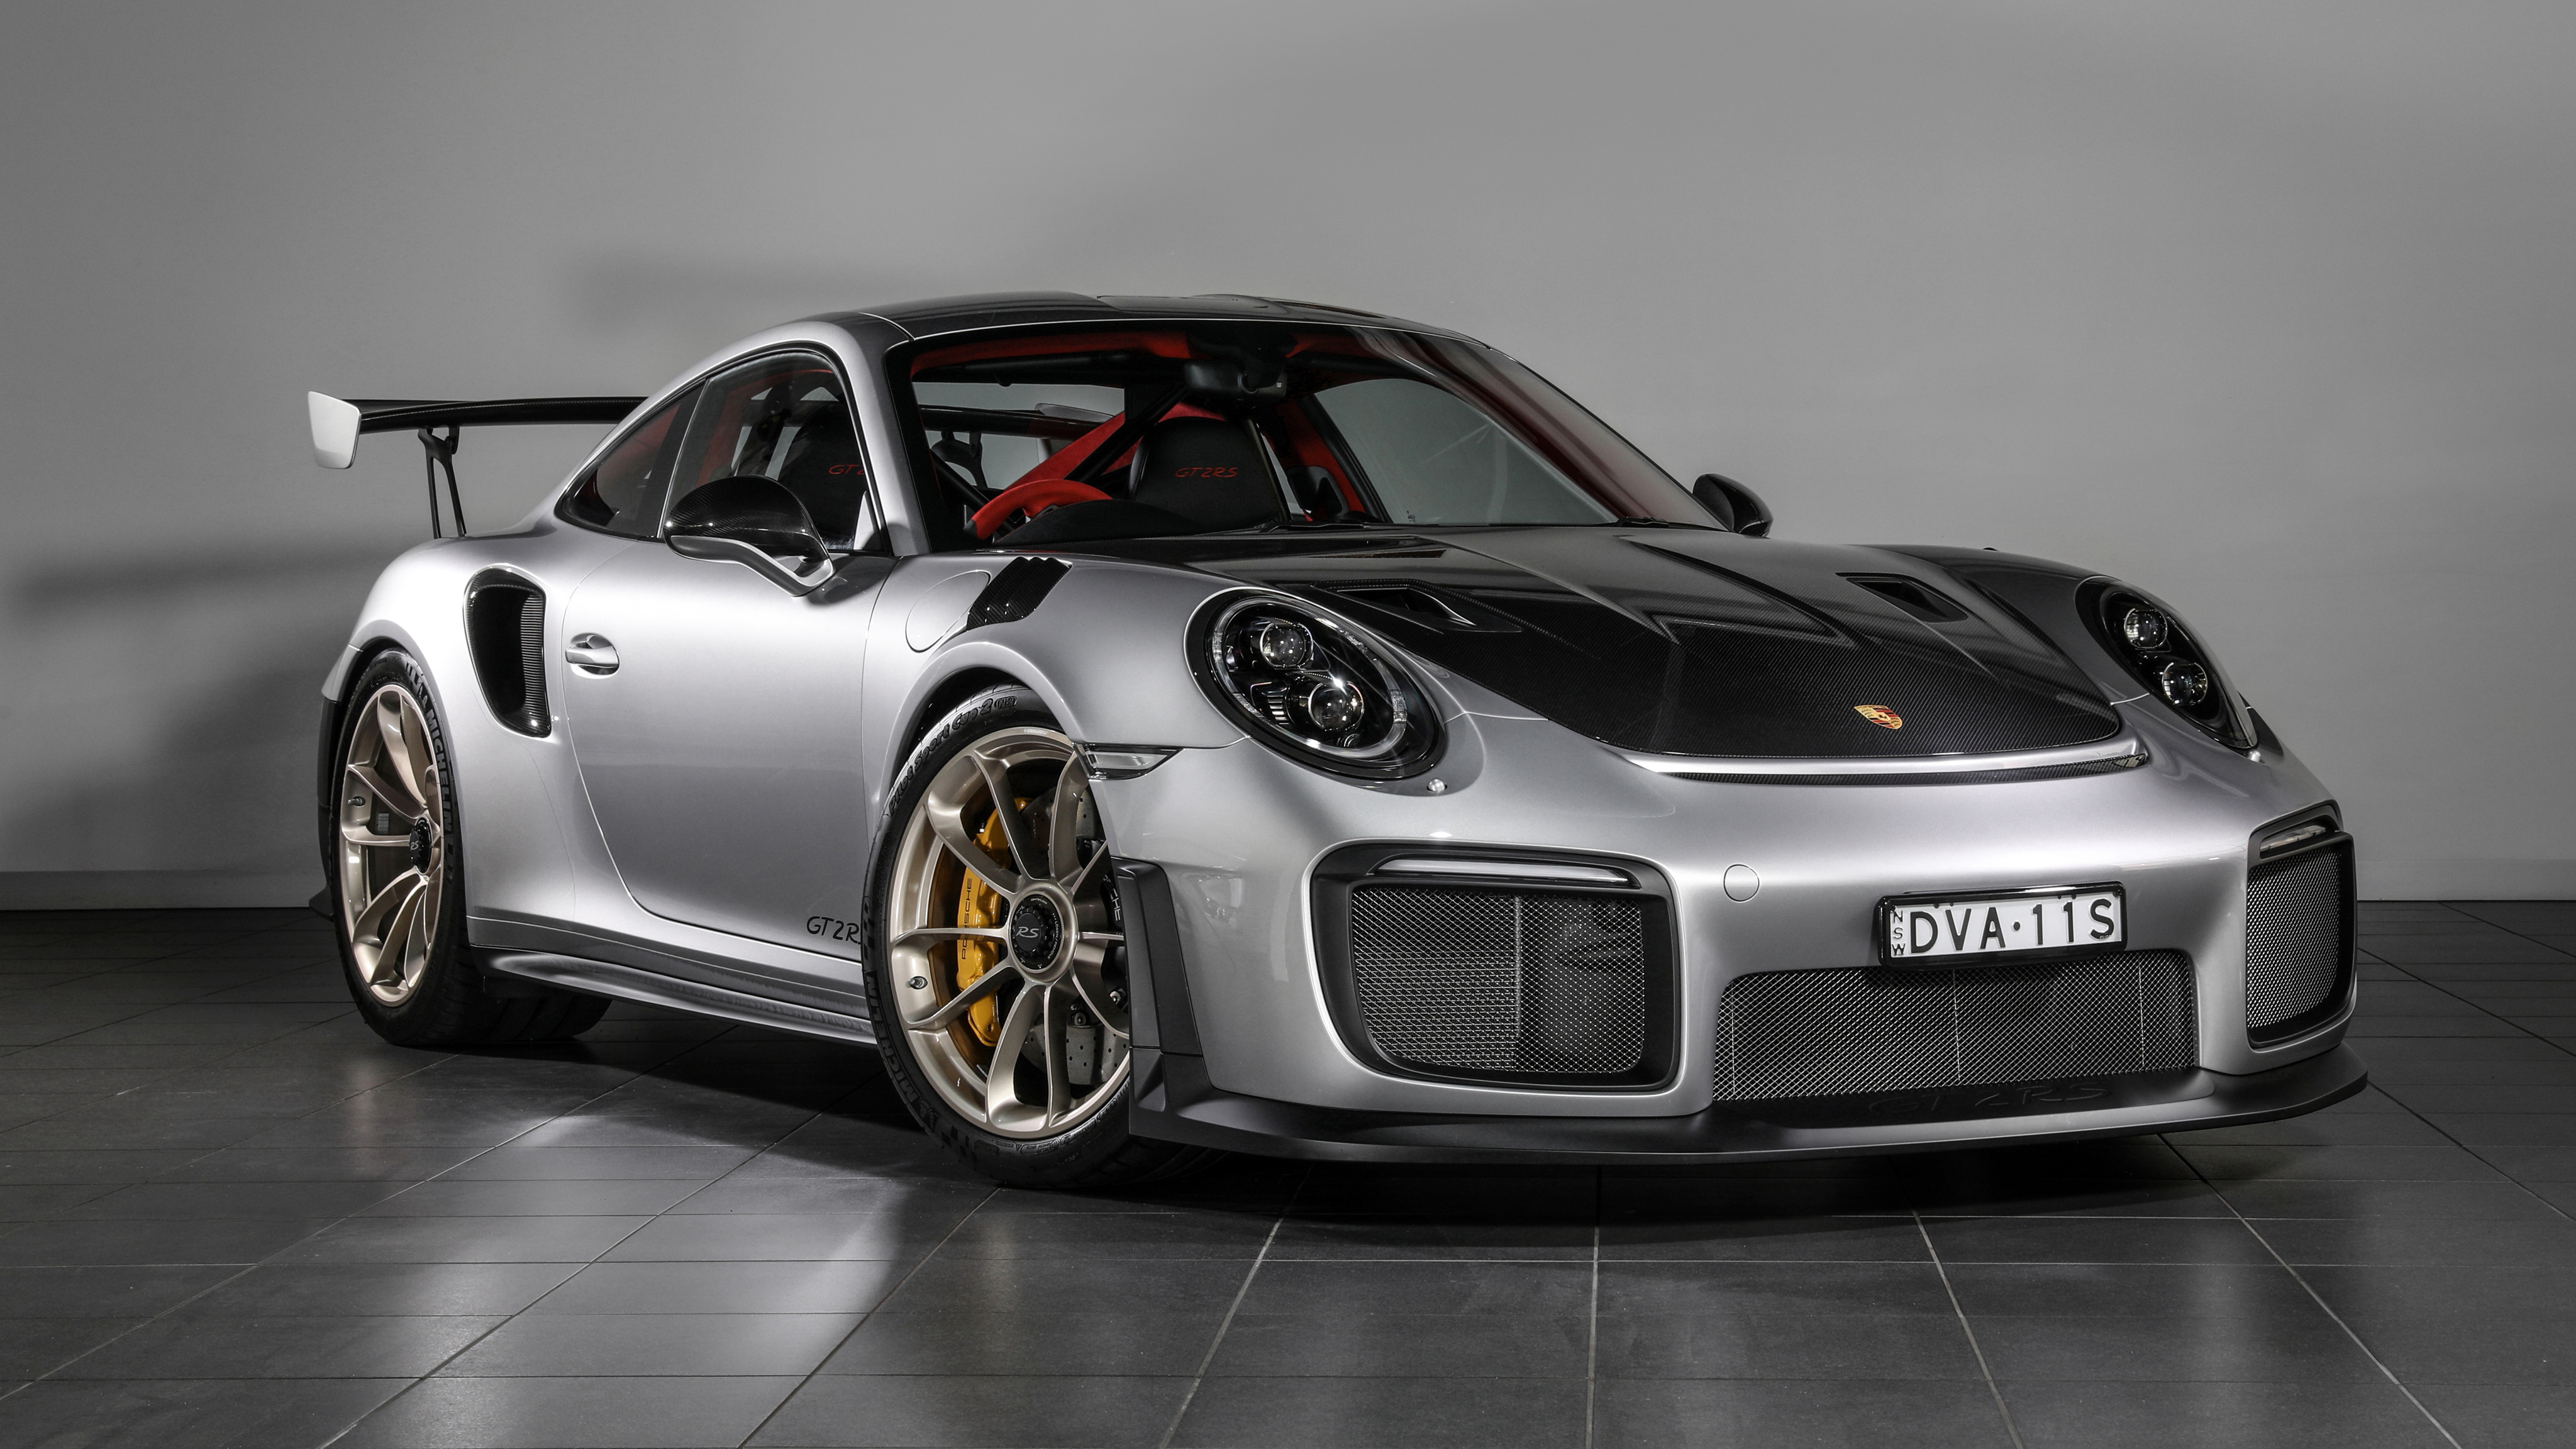 2018 Porsche 911 Gt2 Rs 4k Wallpaper Hd Car Wallpapers Id 10096